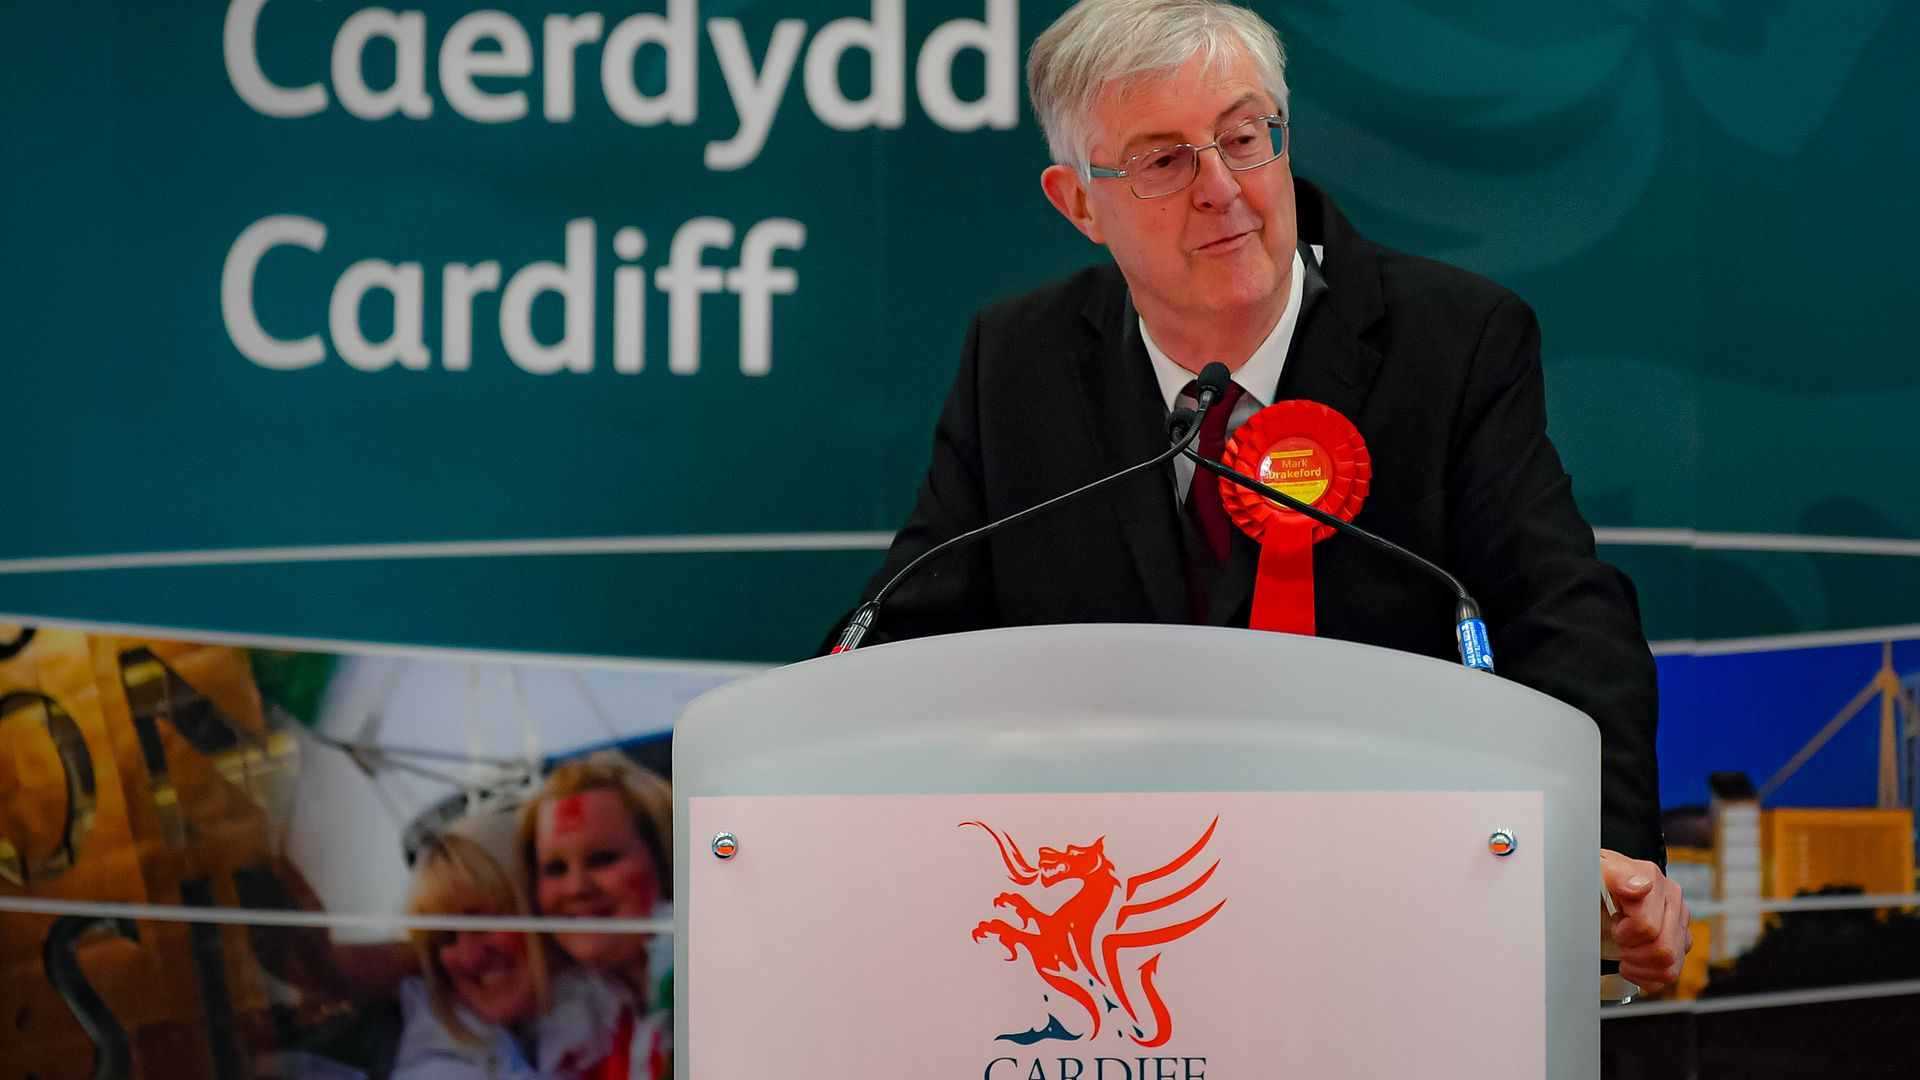 Welsh First Minister Mark Drakeford is elected as Cardiff West MS, after counting votes for the Welsh Parliamentary Elections - Credit: PA